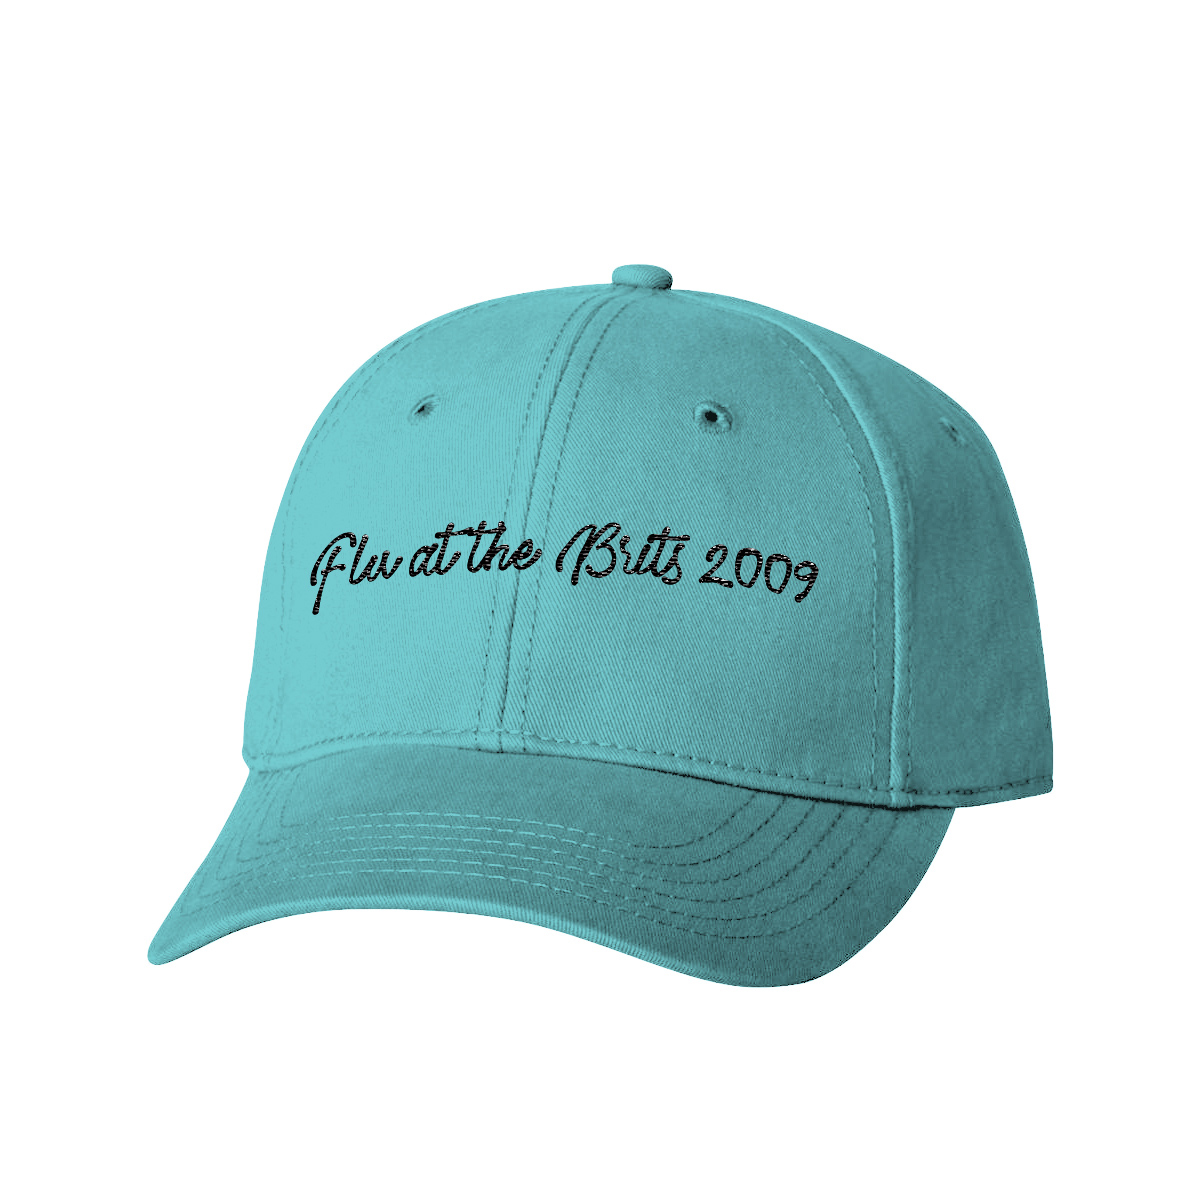 Flu at the Britts 2009 Blue Dad Hat